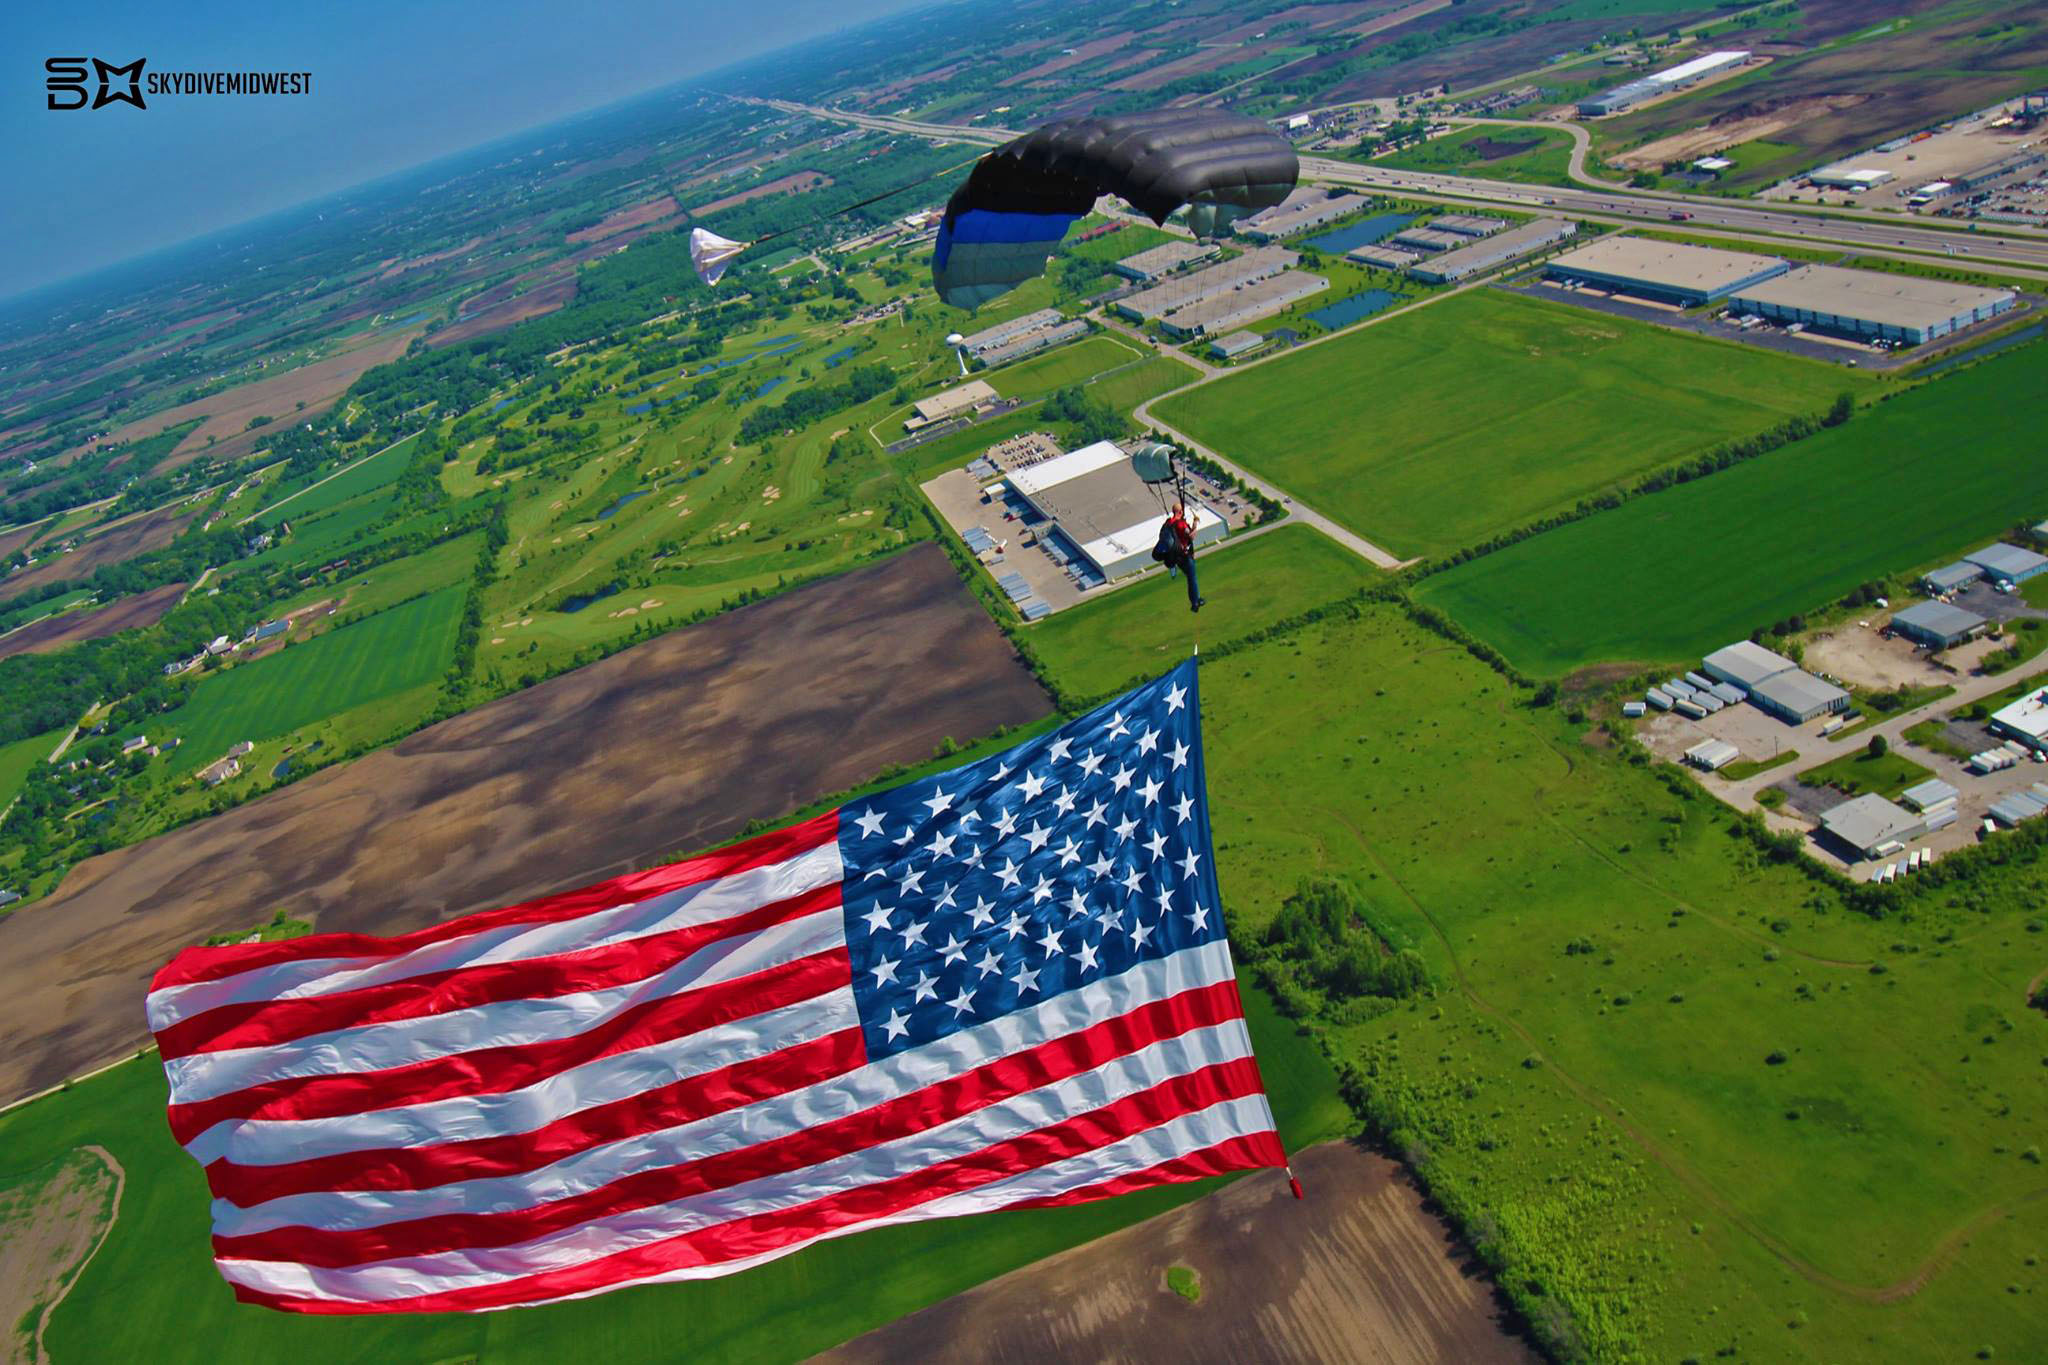 Flag Jump Skydive Midwest Memorial Day Chicago Skydiving Demonstration Jump